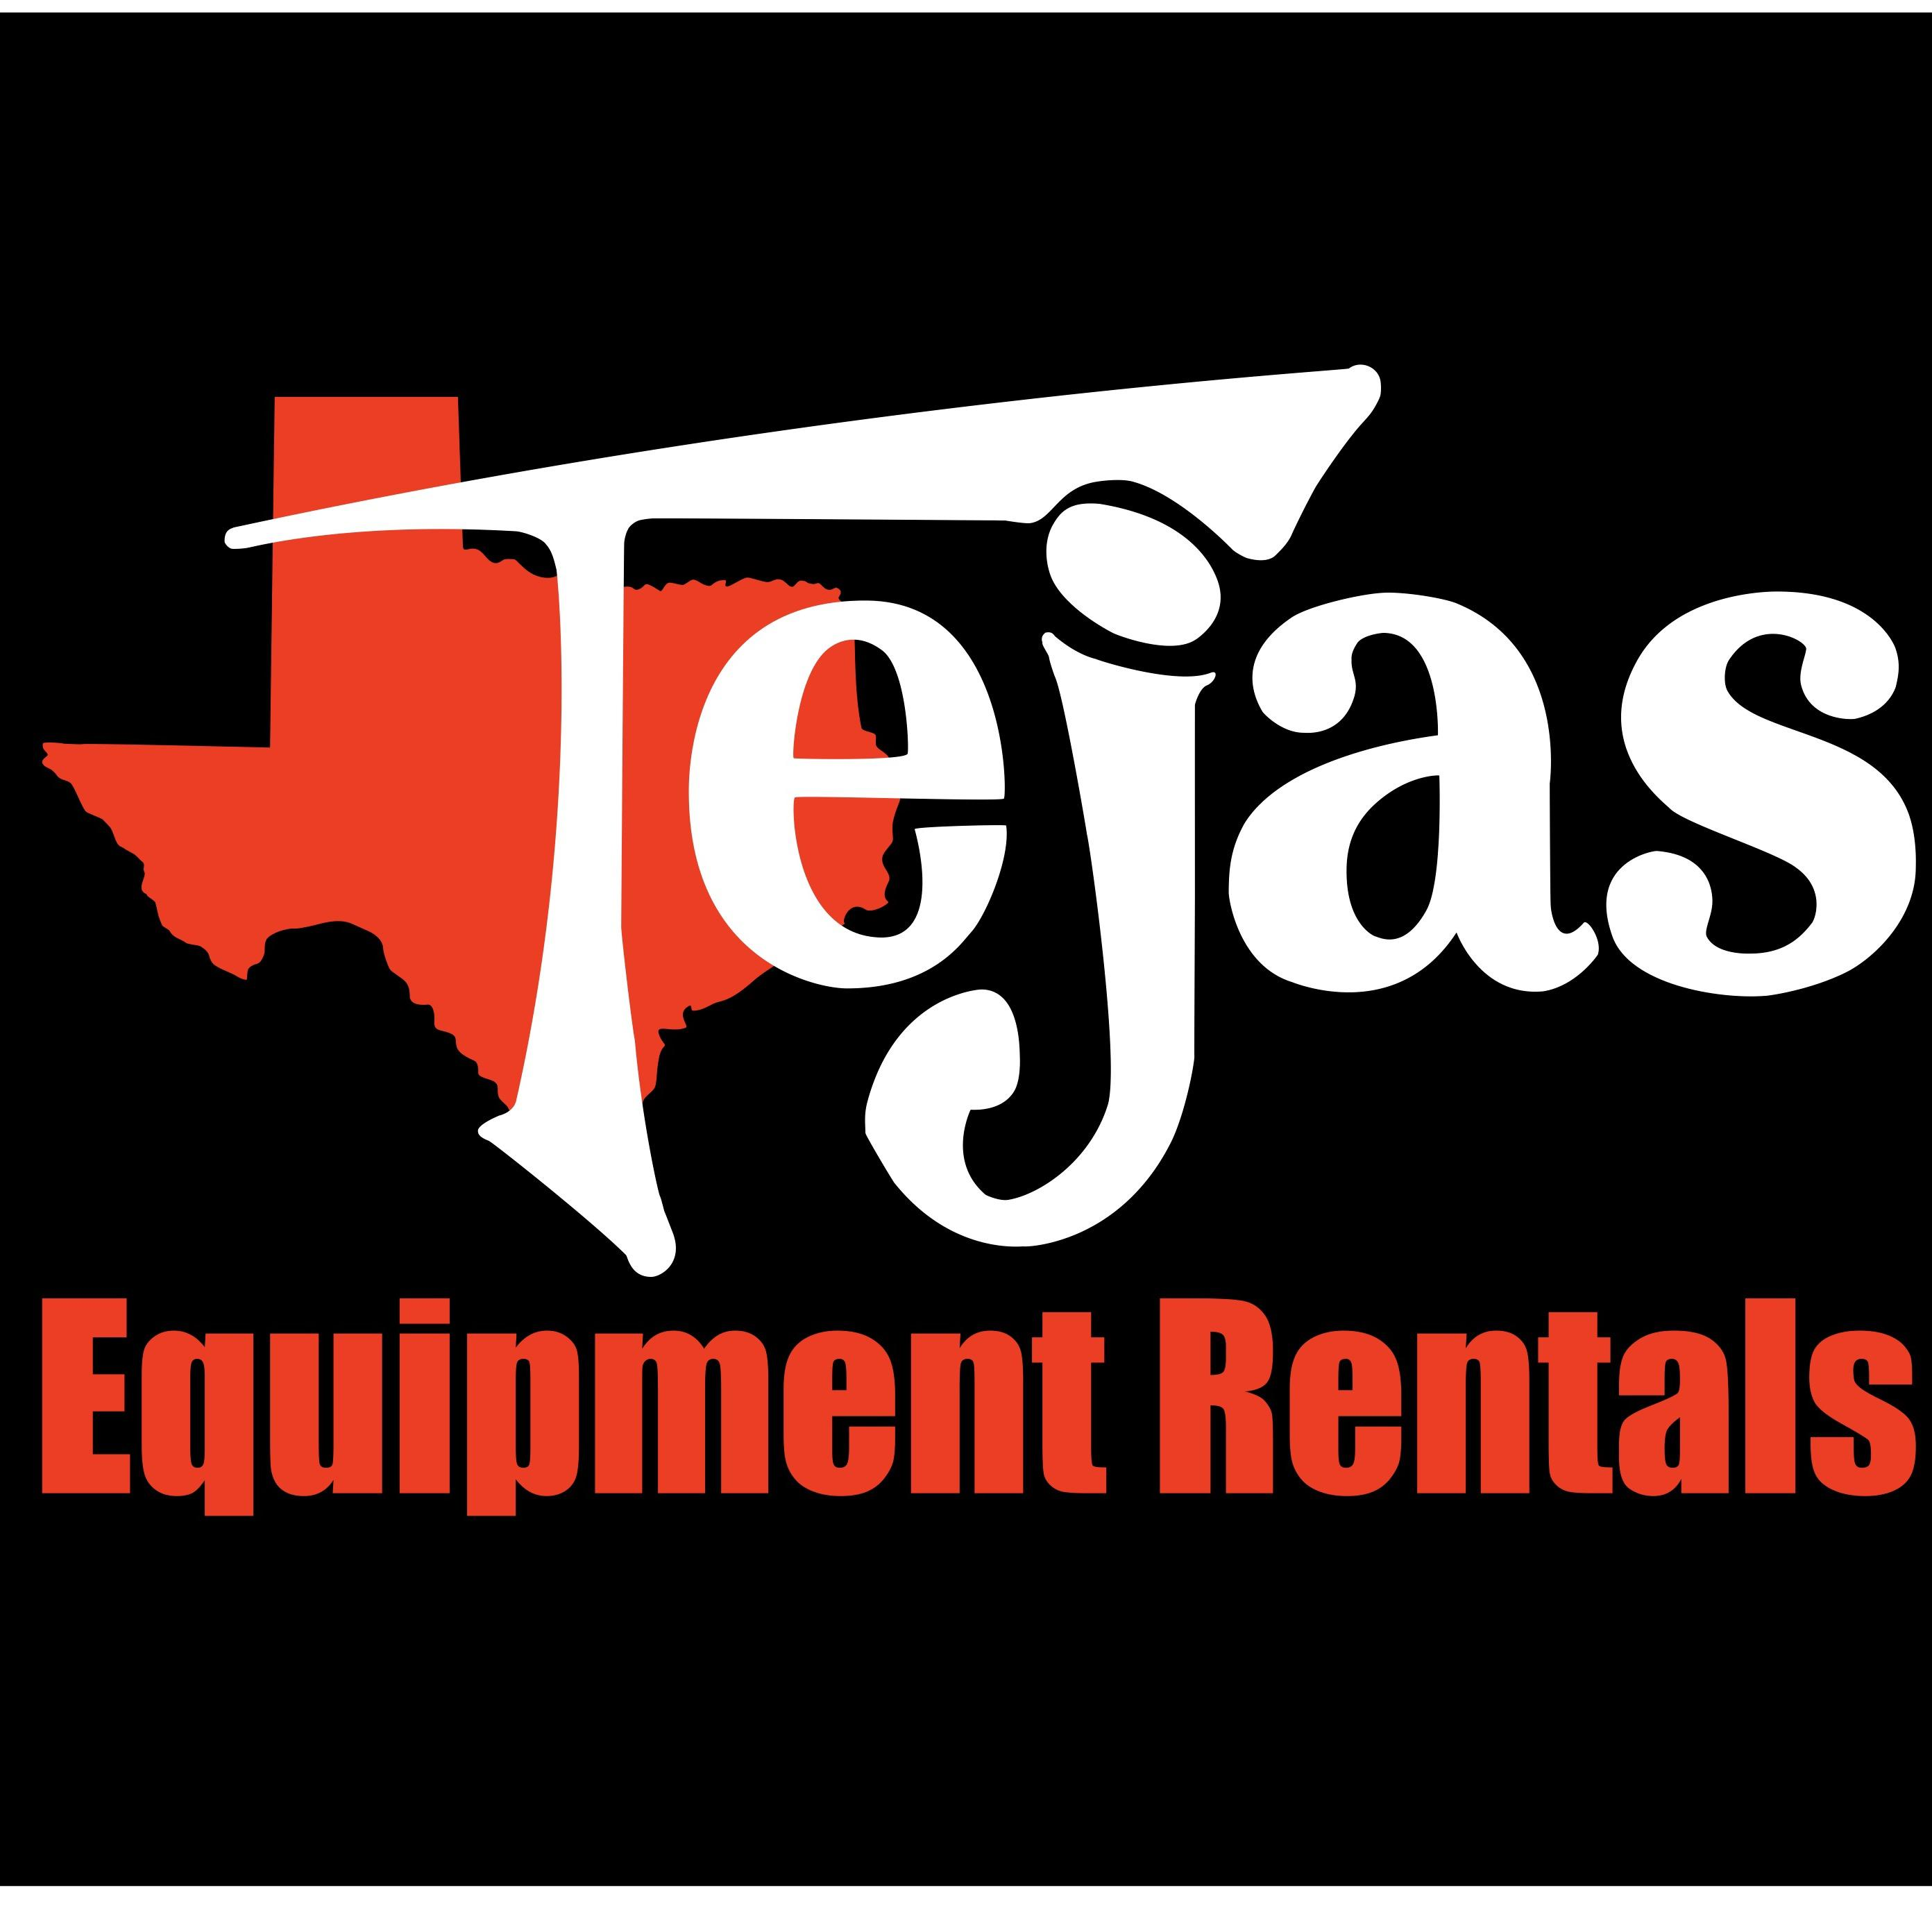 Tejas Equipment Rentals